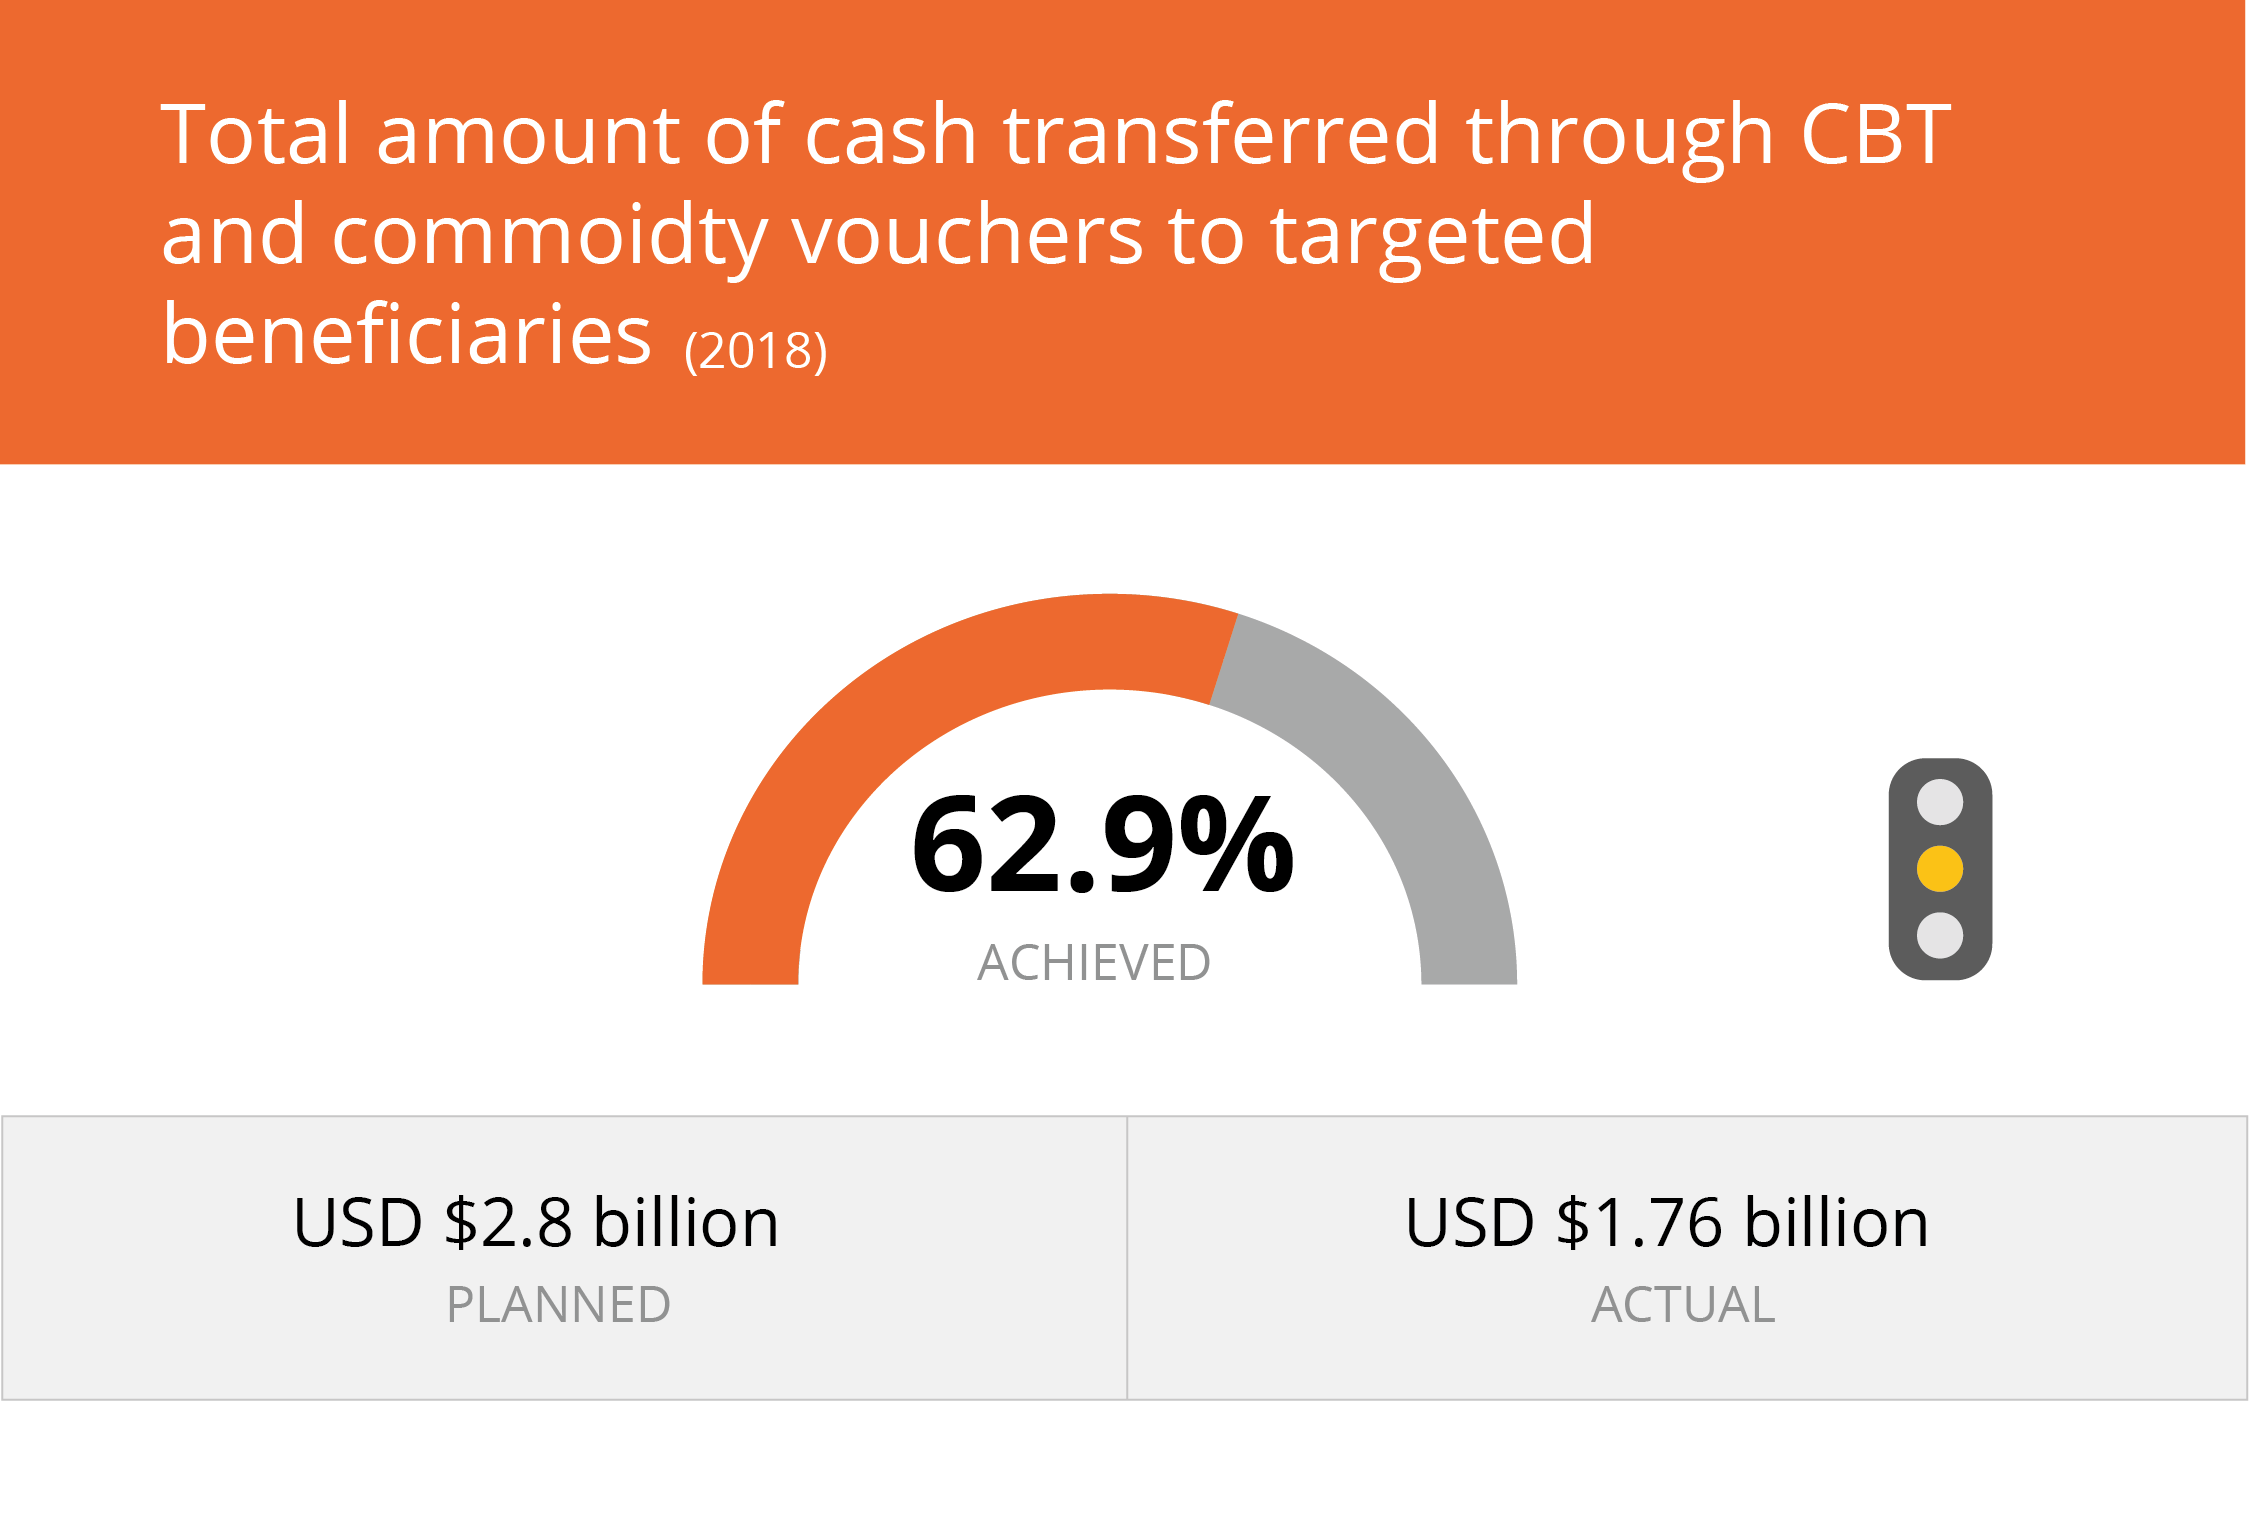 achieved 63.6% of the goal to reach the total amount of CBT to targeted beneficiaries